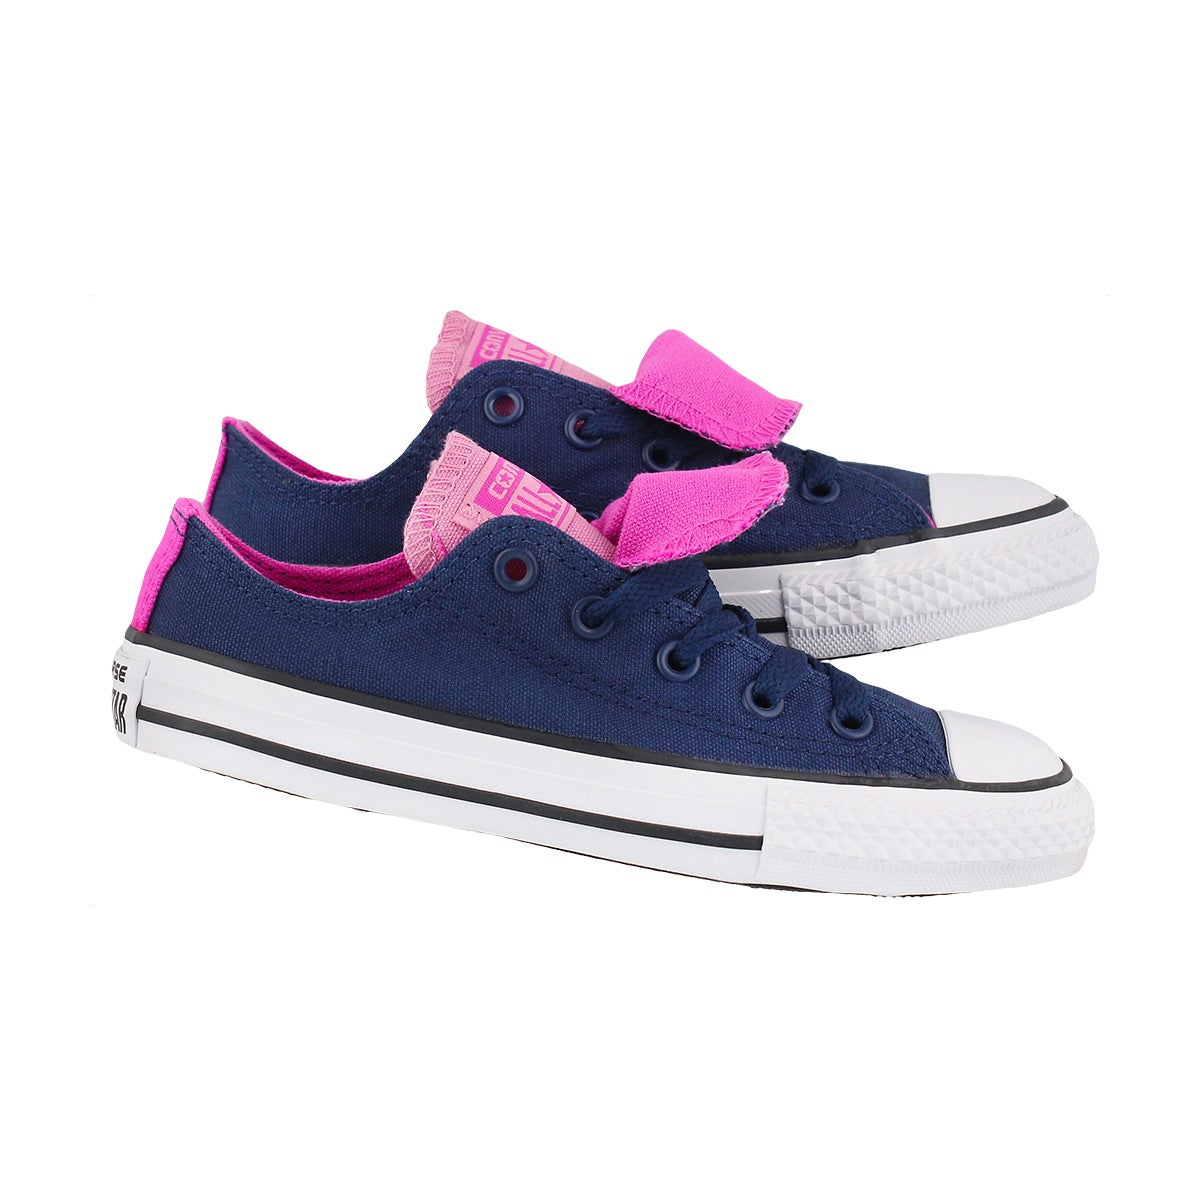 Grls CTAS Double Tongue nvy/pnk sneaker